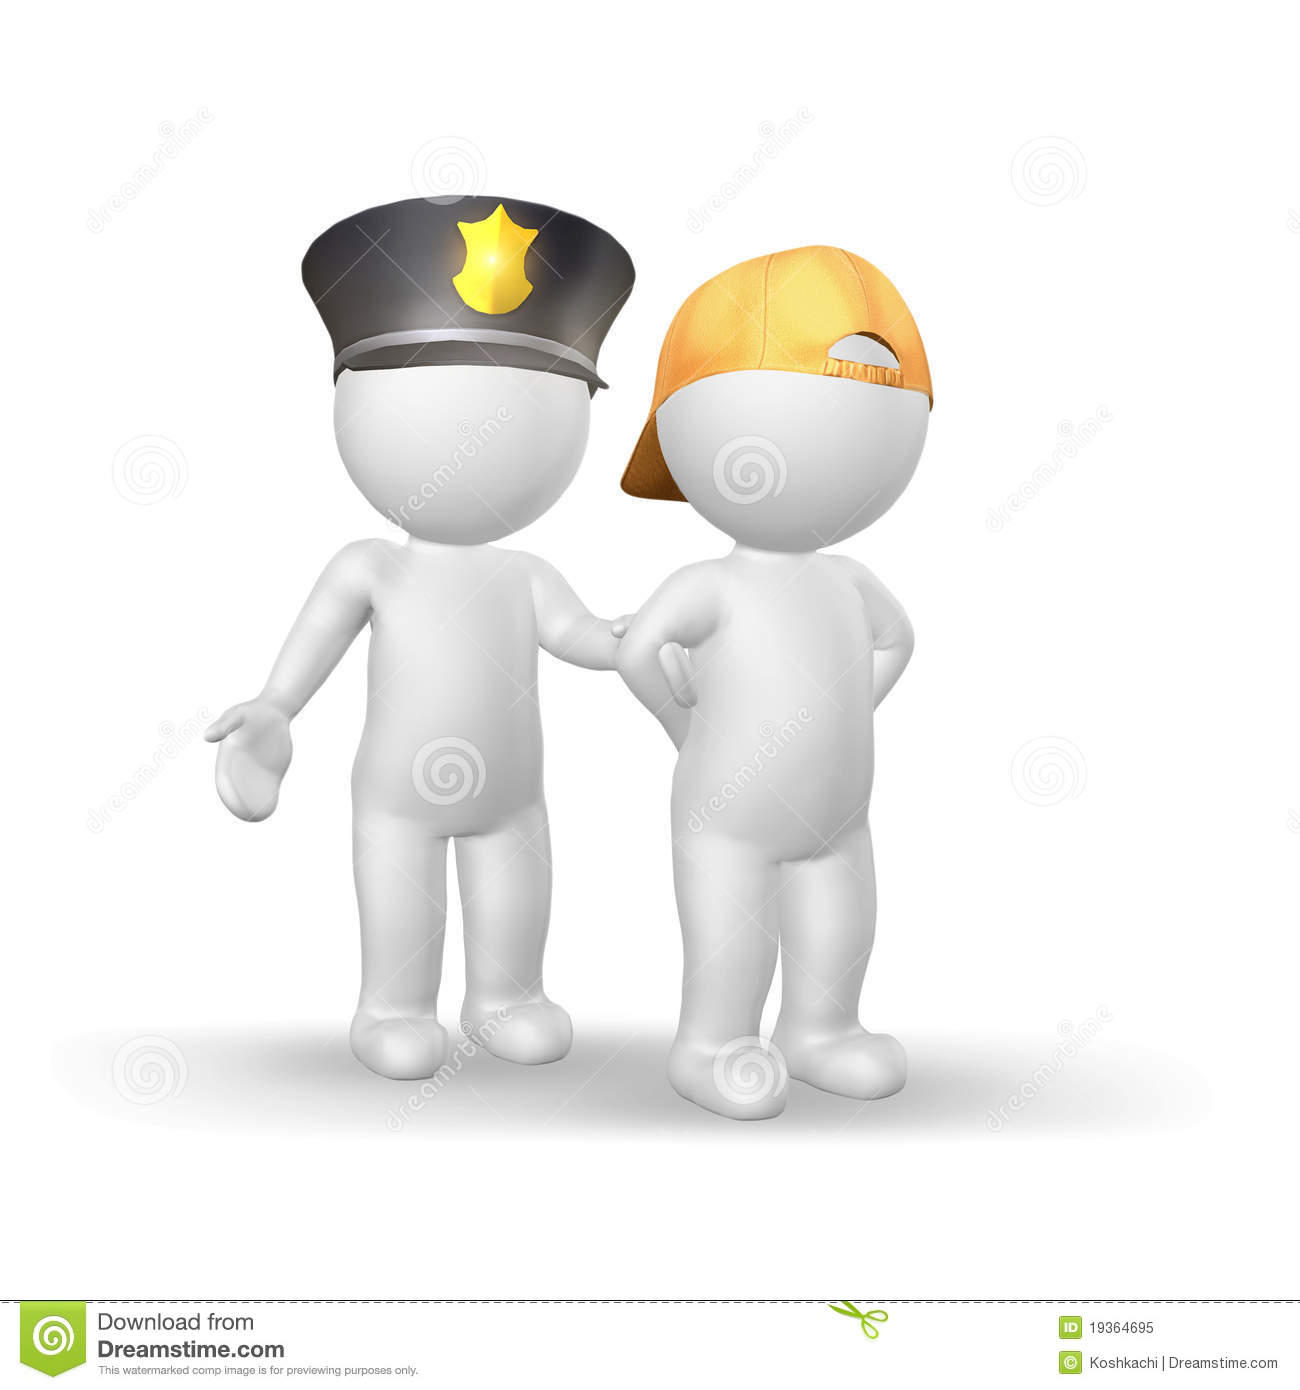 essay on juvenile delinquency best images about juvenile justice  juvenile crime clipart clipart kid policeman and lteenager isolated on white background